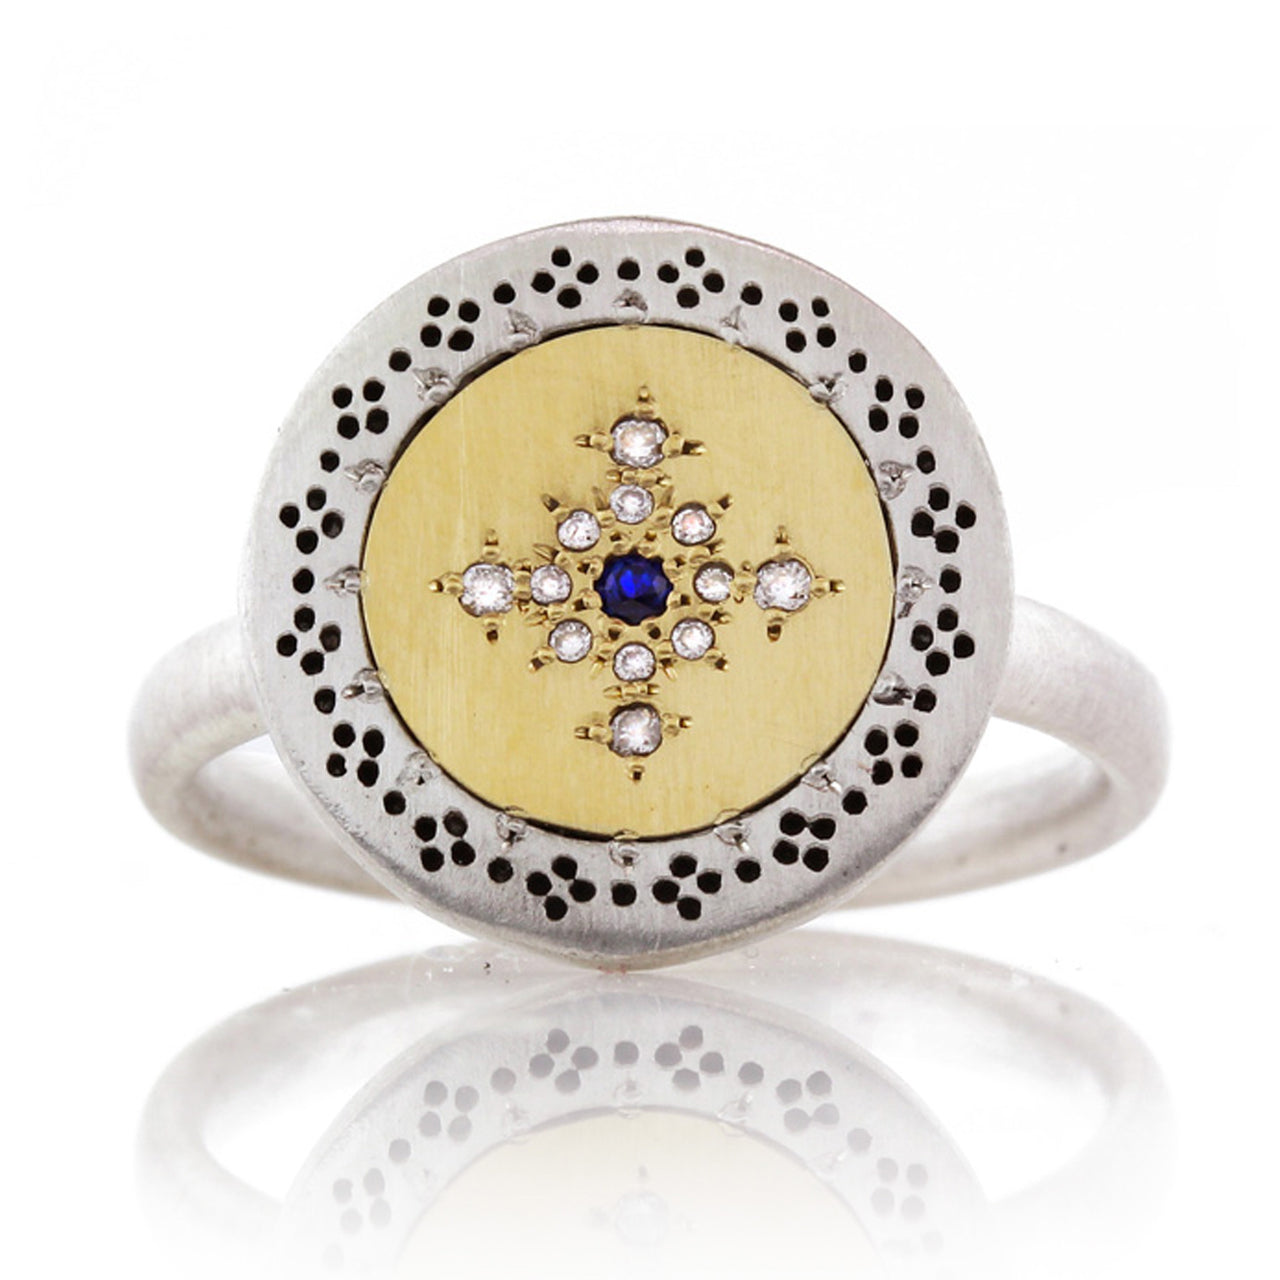 Sapphire and Diamond Disk Ring 14k Gold and Silver